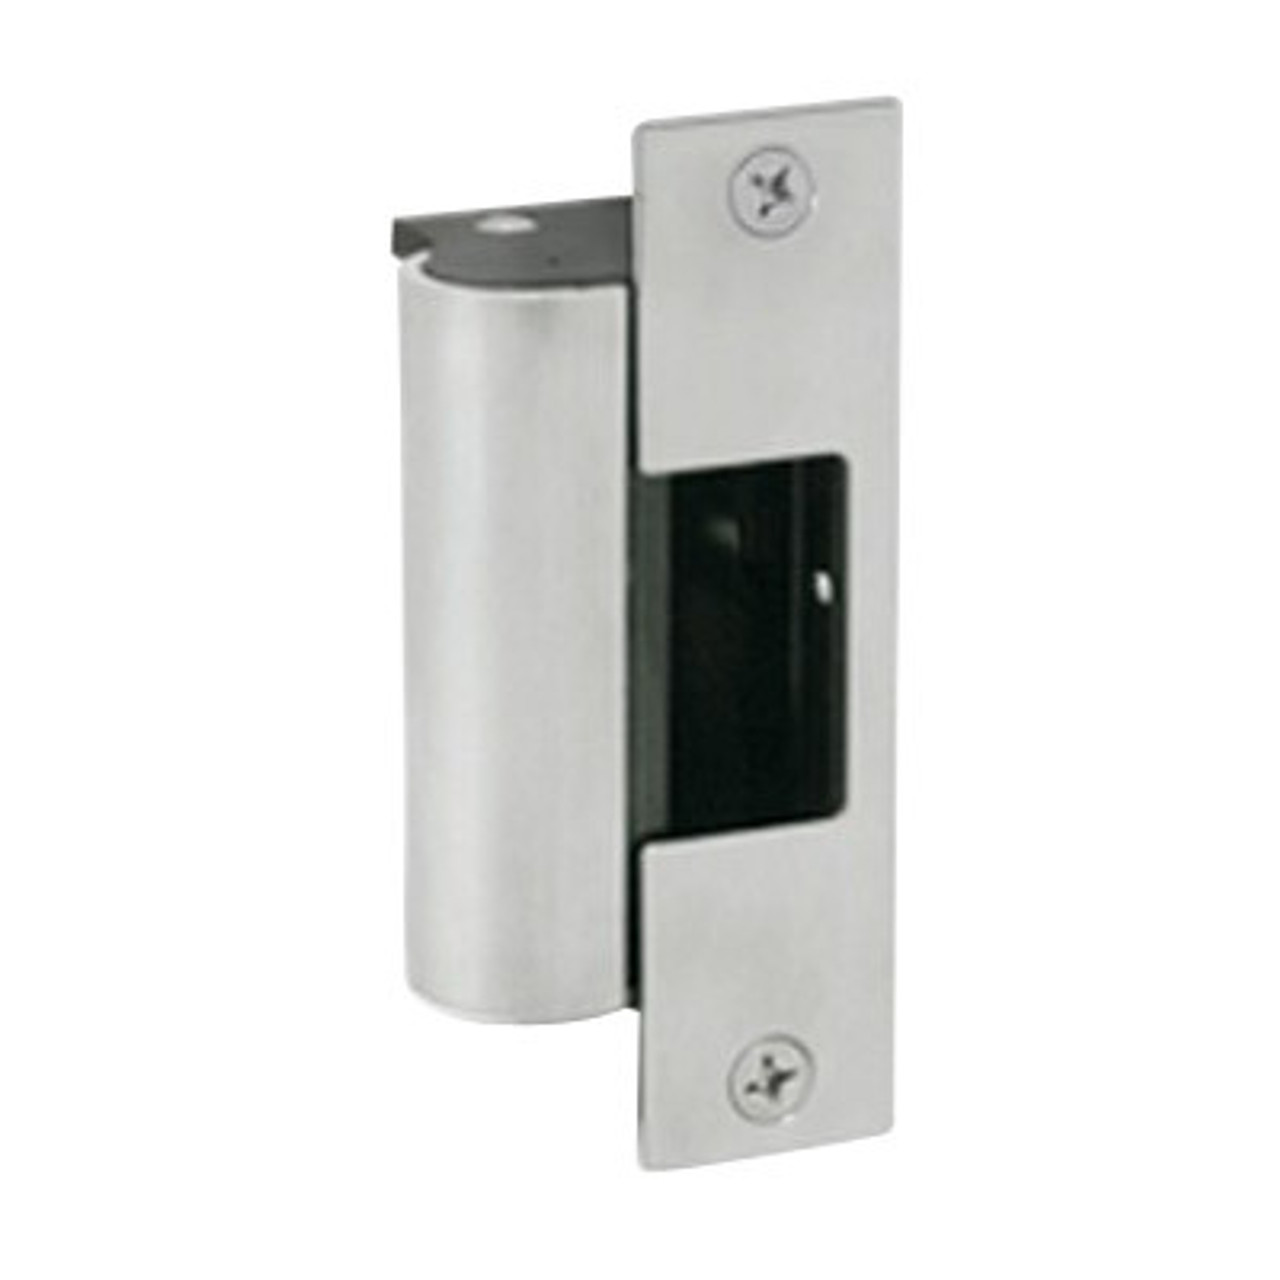 1006CLB-LBSM-630 Hes 1006 Series Complete Electric Strike for Latchbolt Lock with Latchbolt Strike Monitor in Satin Stainless Finish